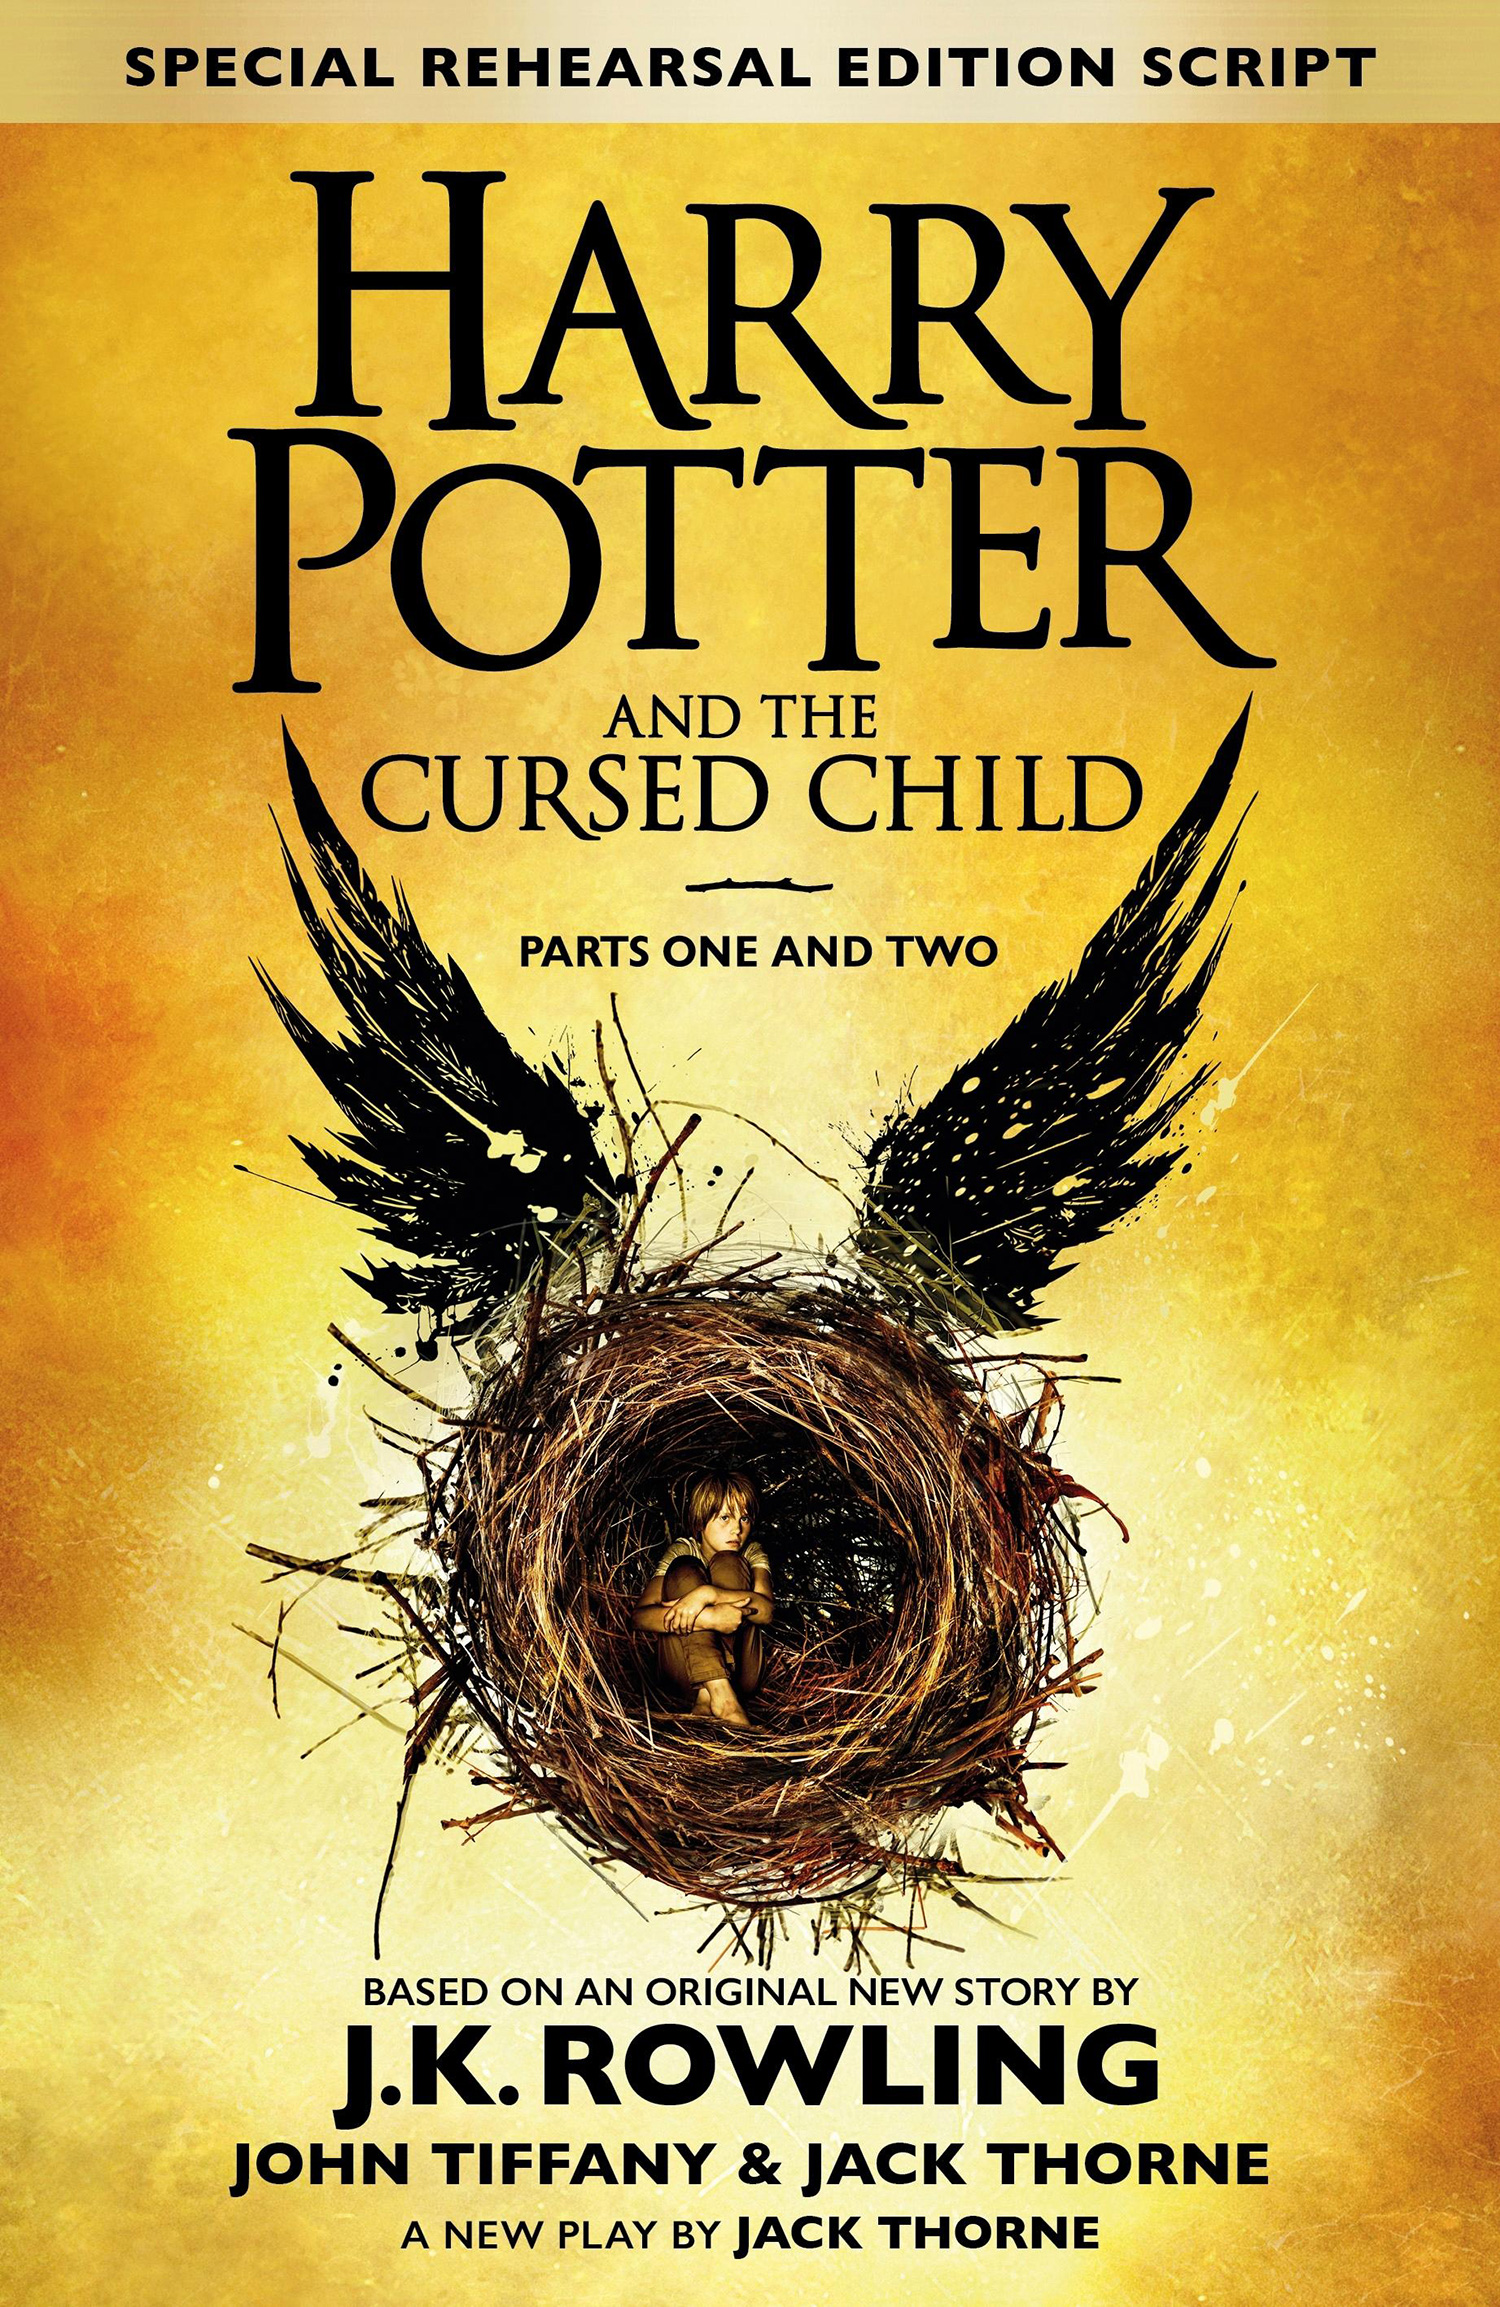 'Cursed Child' script book (UK)